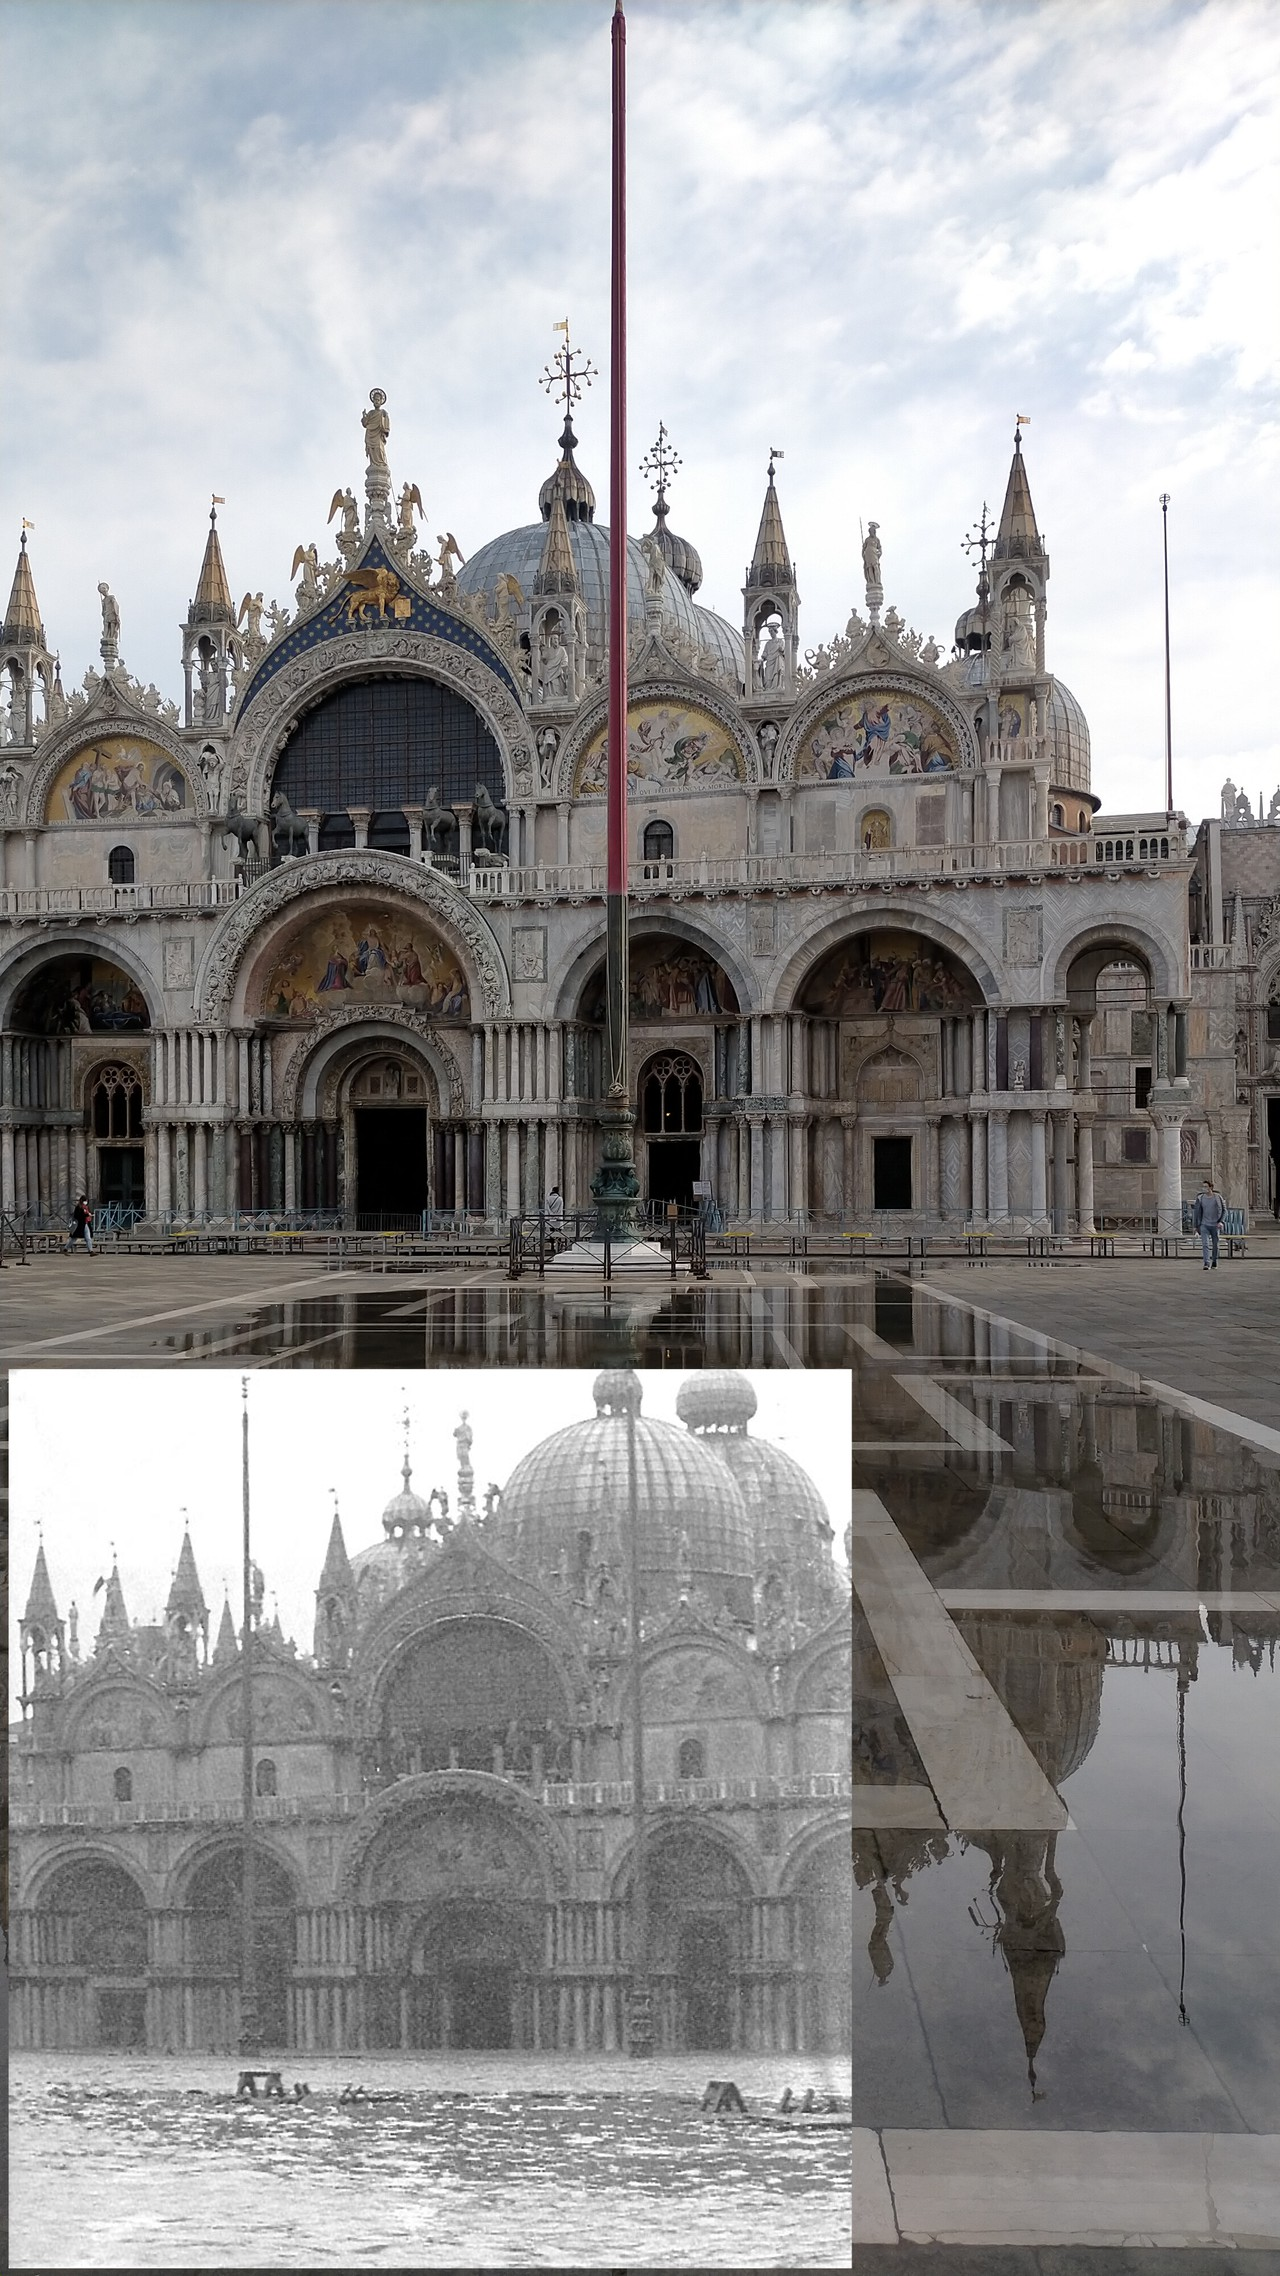 St Mark's Square flooding current and historical comparison.png